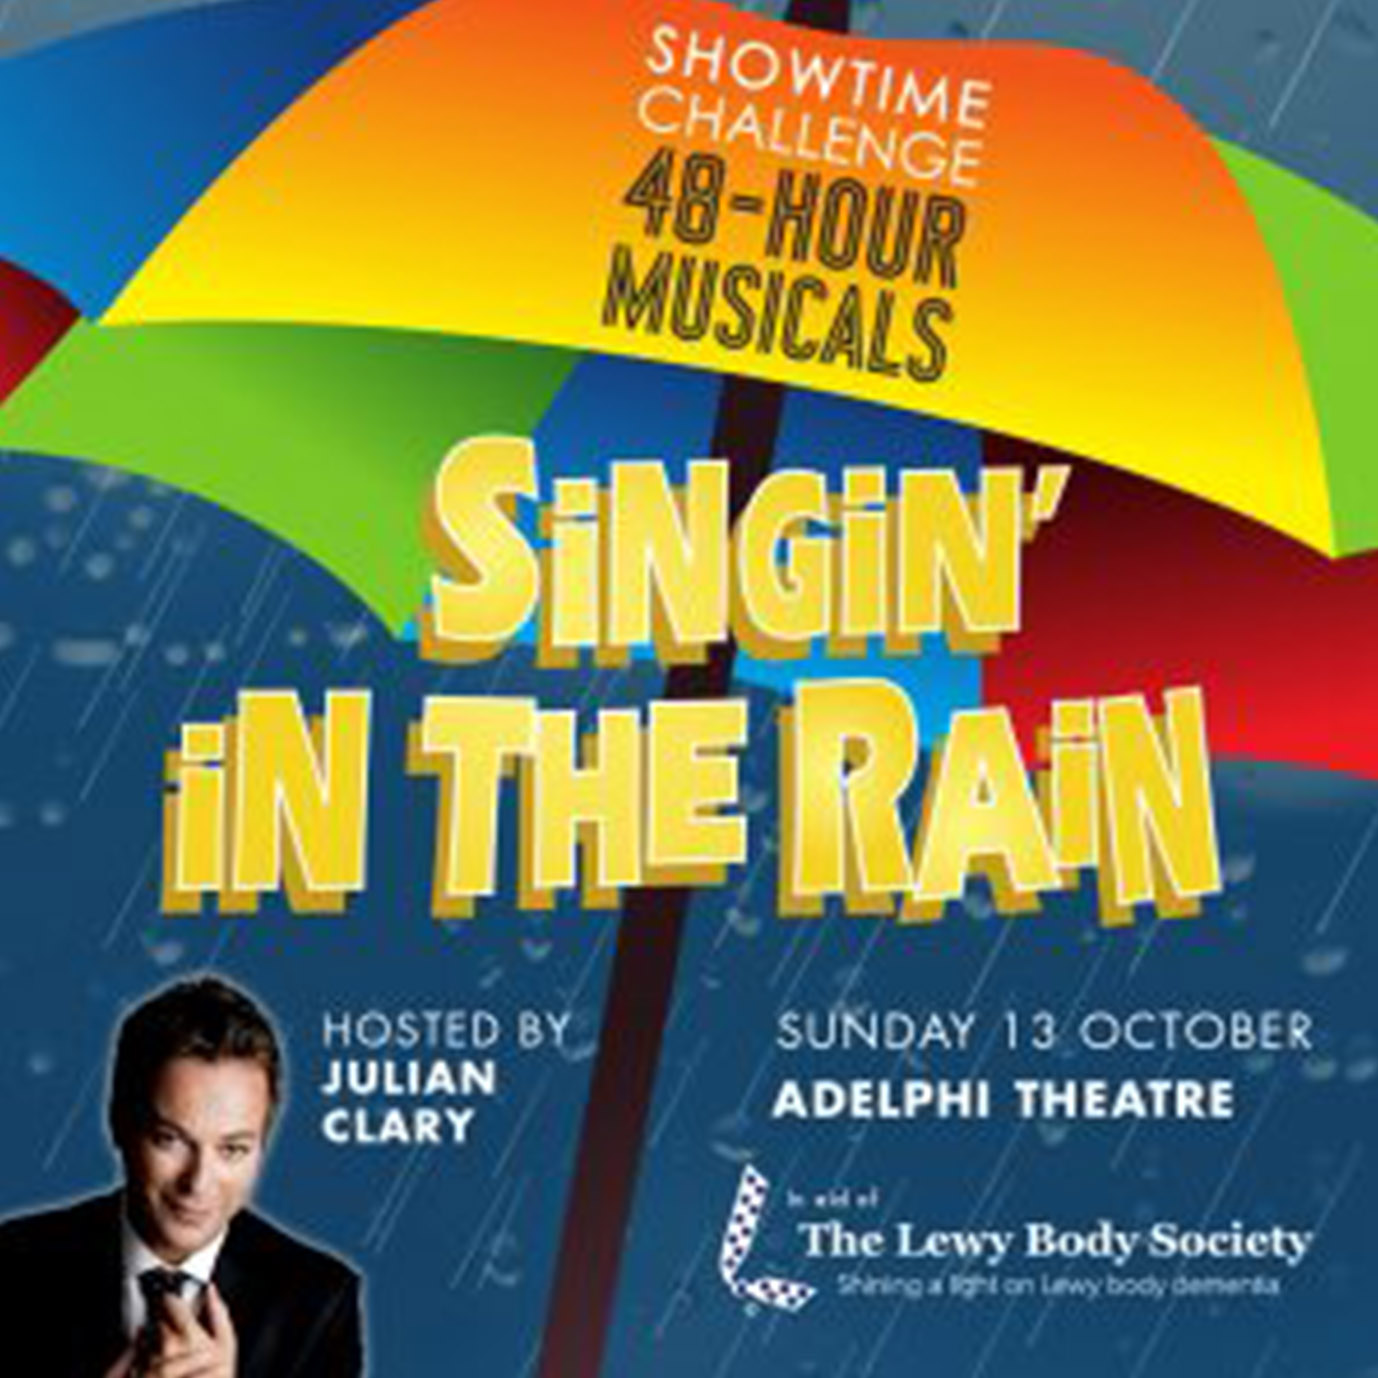 Honor O'Neill to appear in Singin' In The Rain - Honor will be joining the ensemble this year at The Adelphi Theatre. The show is entirely rehearsed and staged across 48 hours.